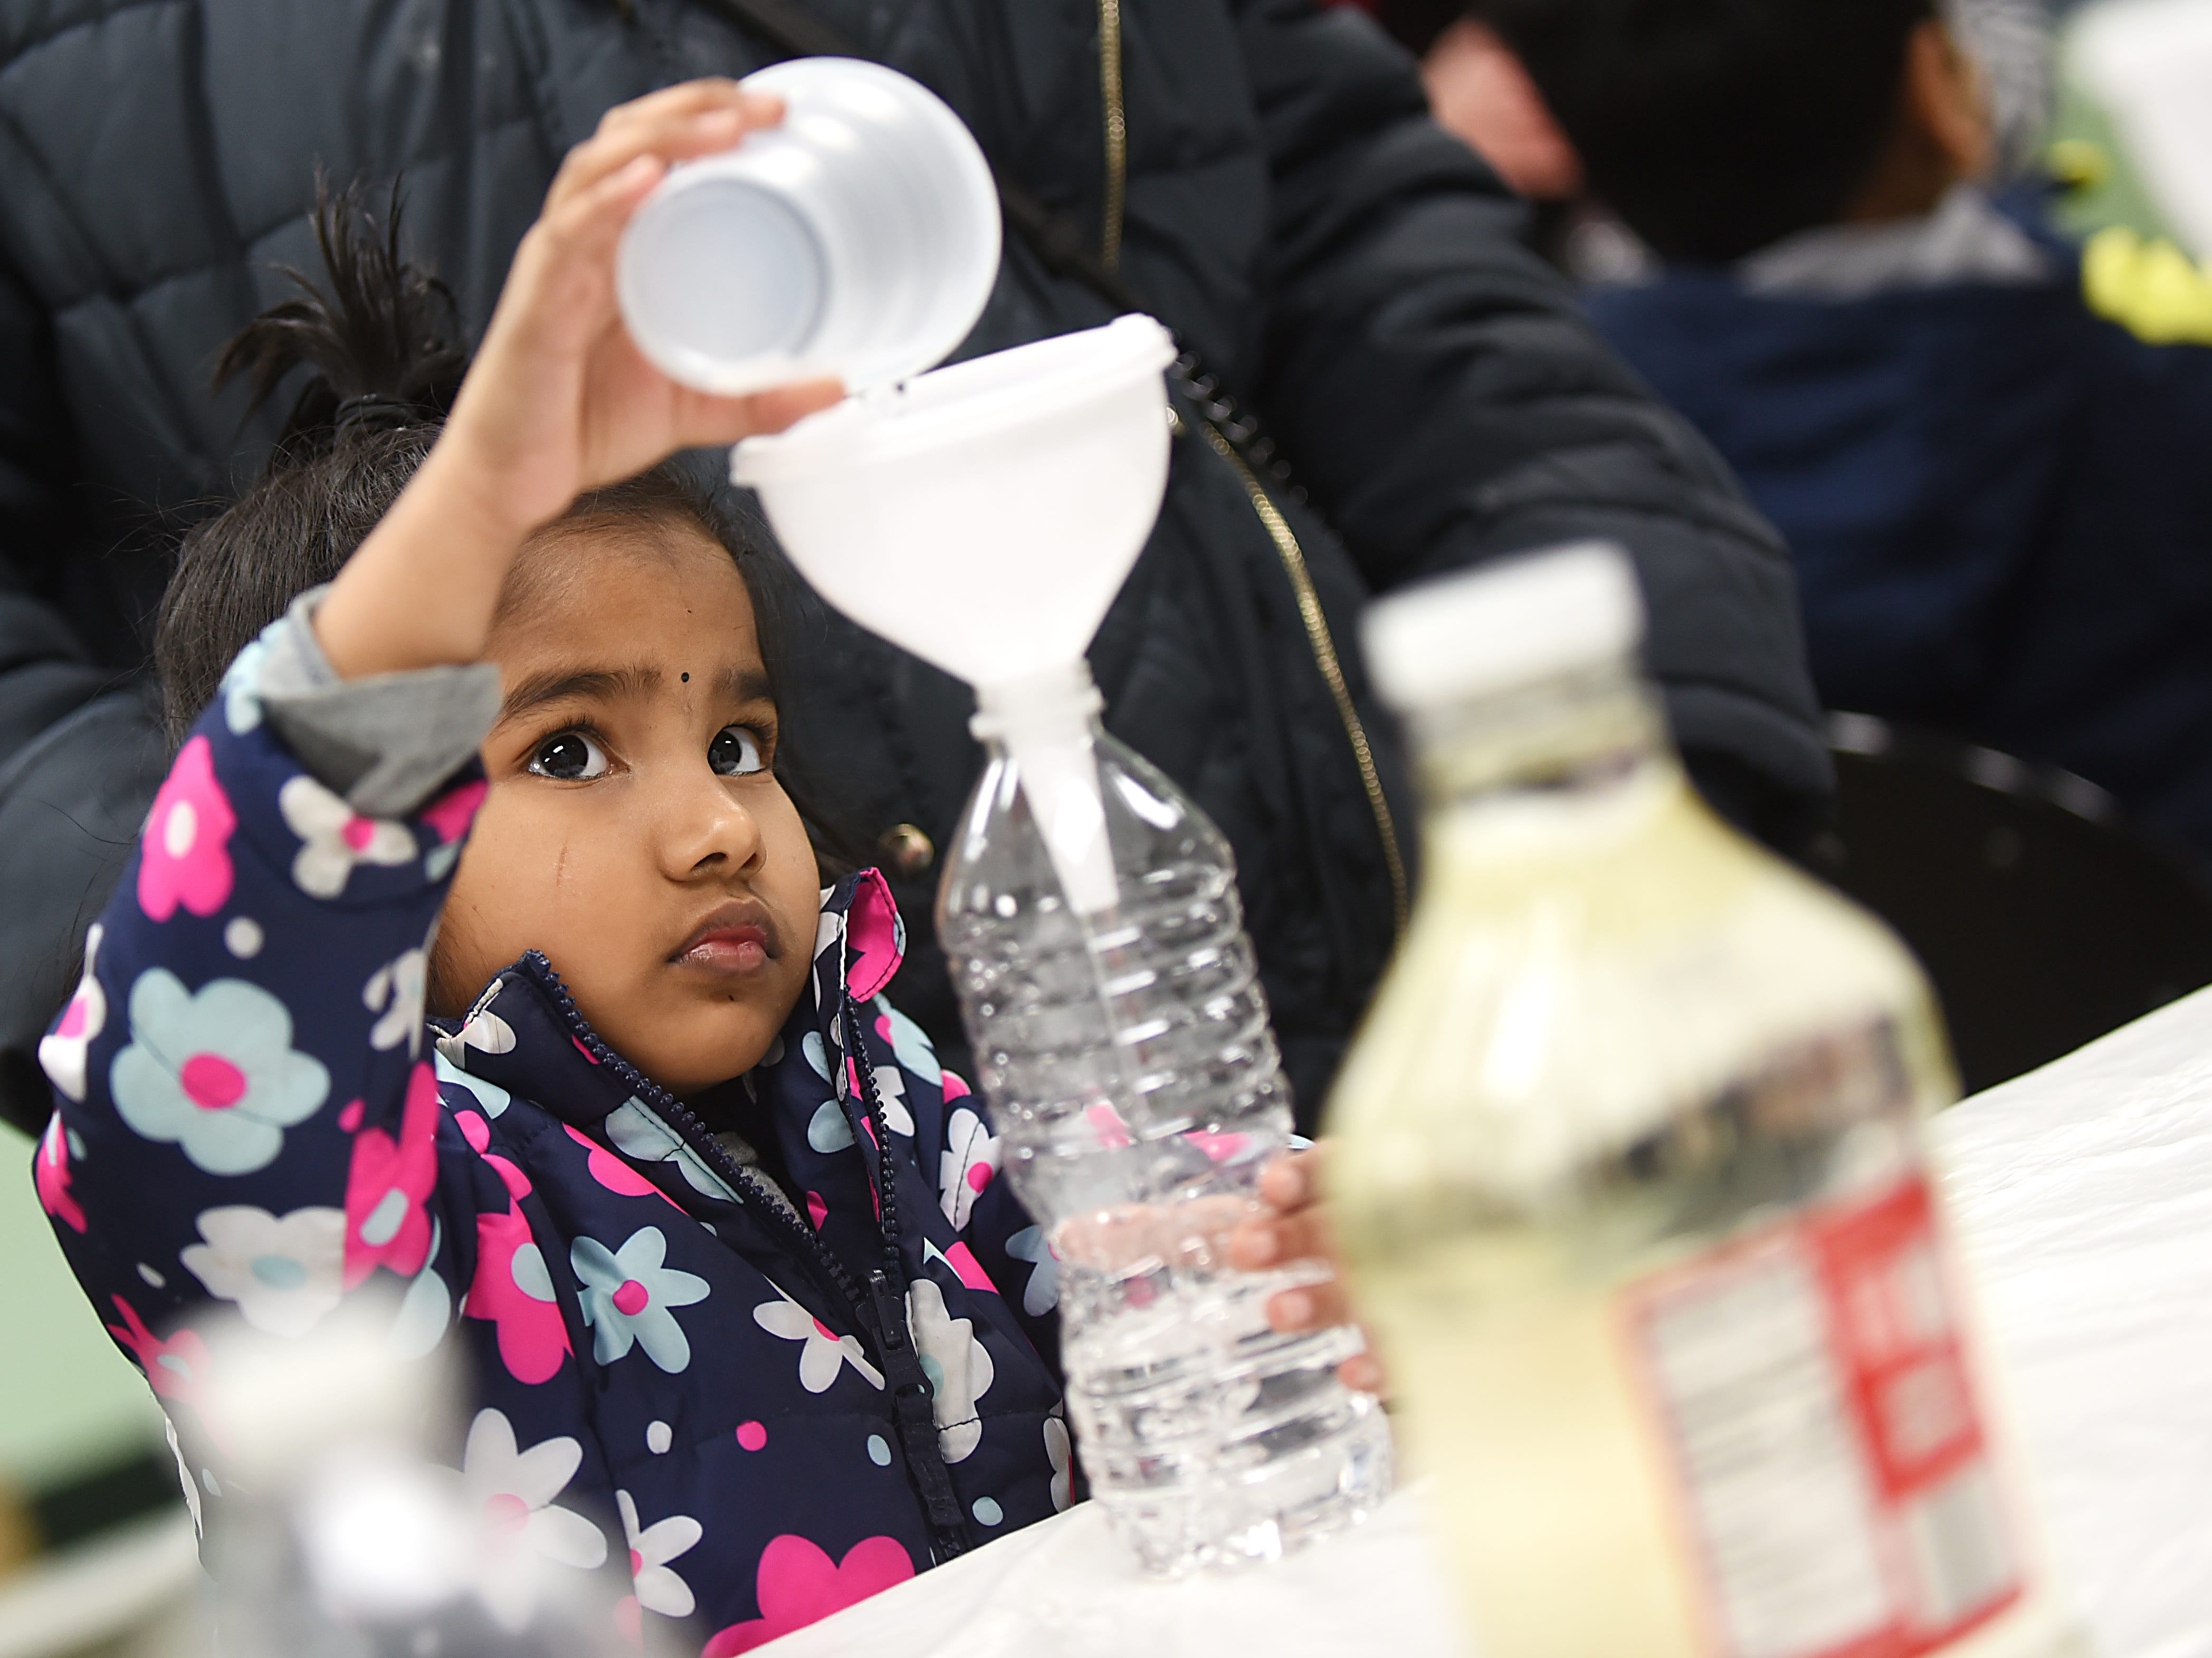 Kausalya Mahalingam, 4 makes a snowstorm in a bottle as part of the STEM Saturday series at East Rutherford Memorial Library on Saturday January 12, 2019.